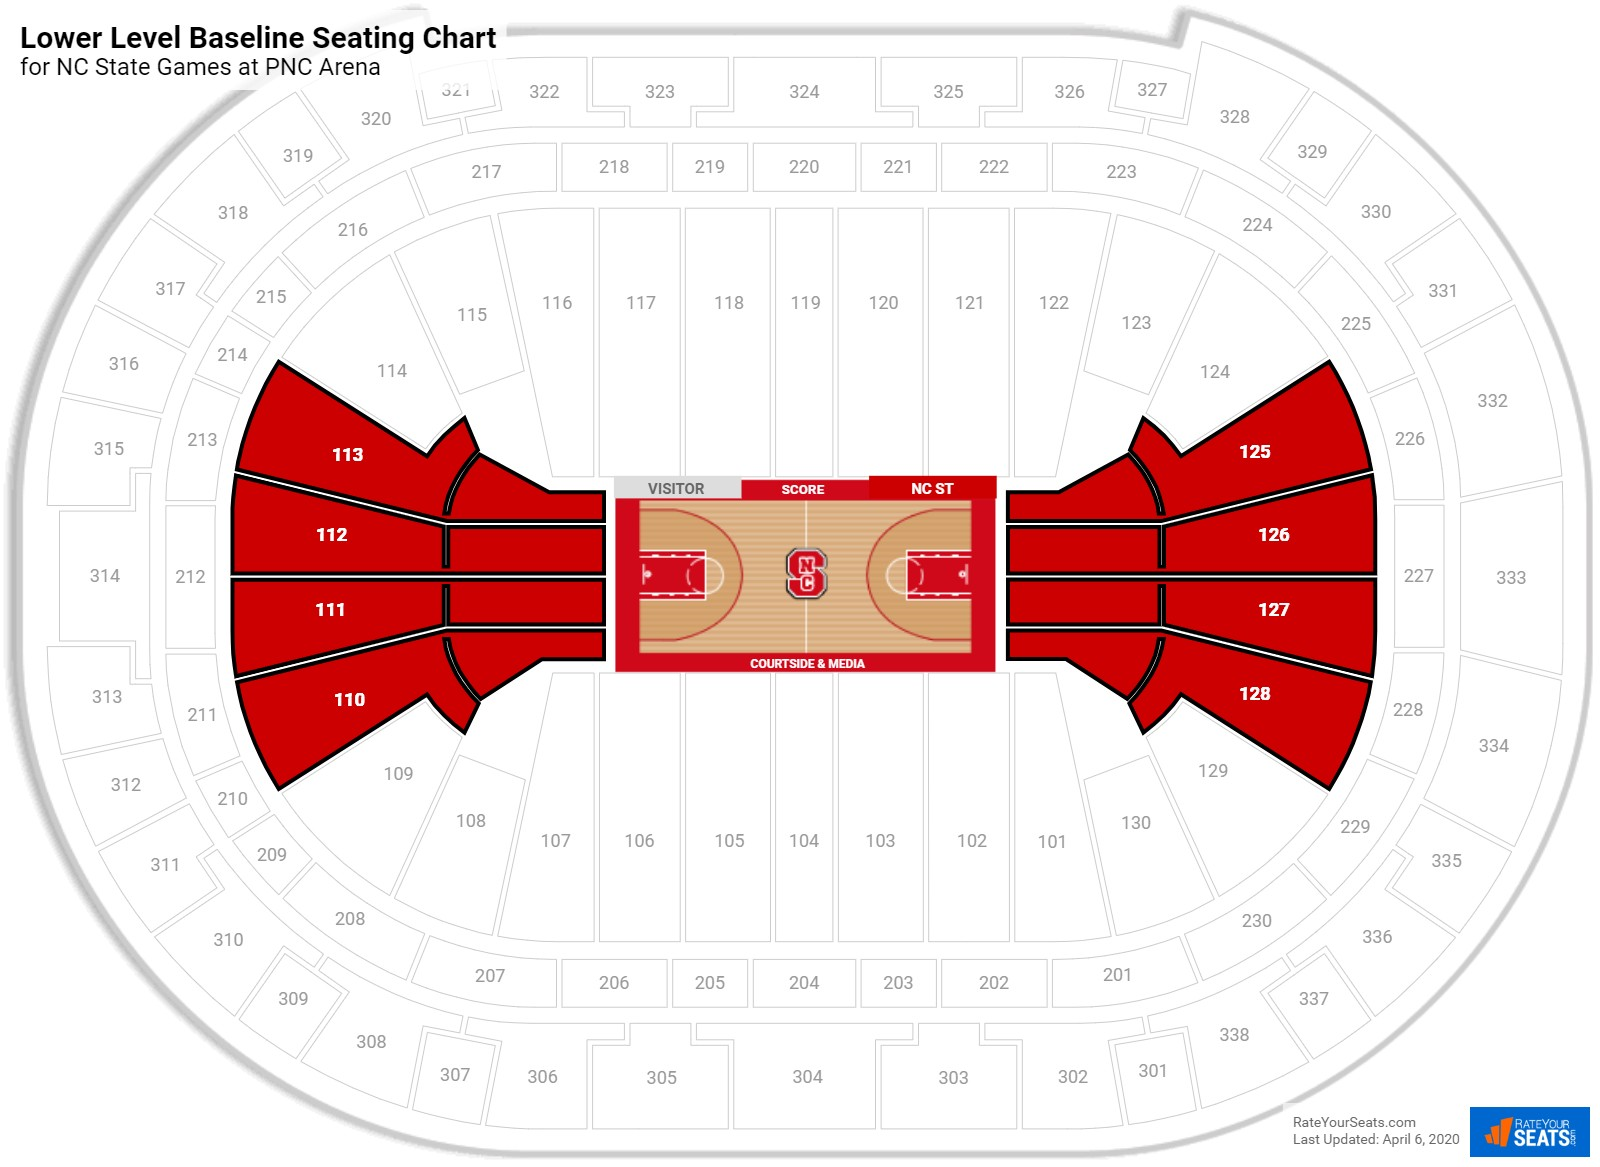 PNC Arena Lower Level Baseline seating chart